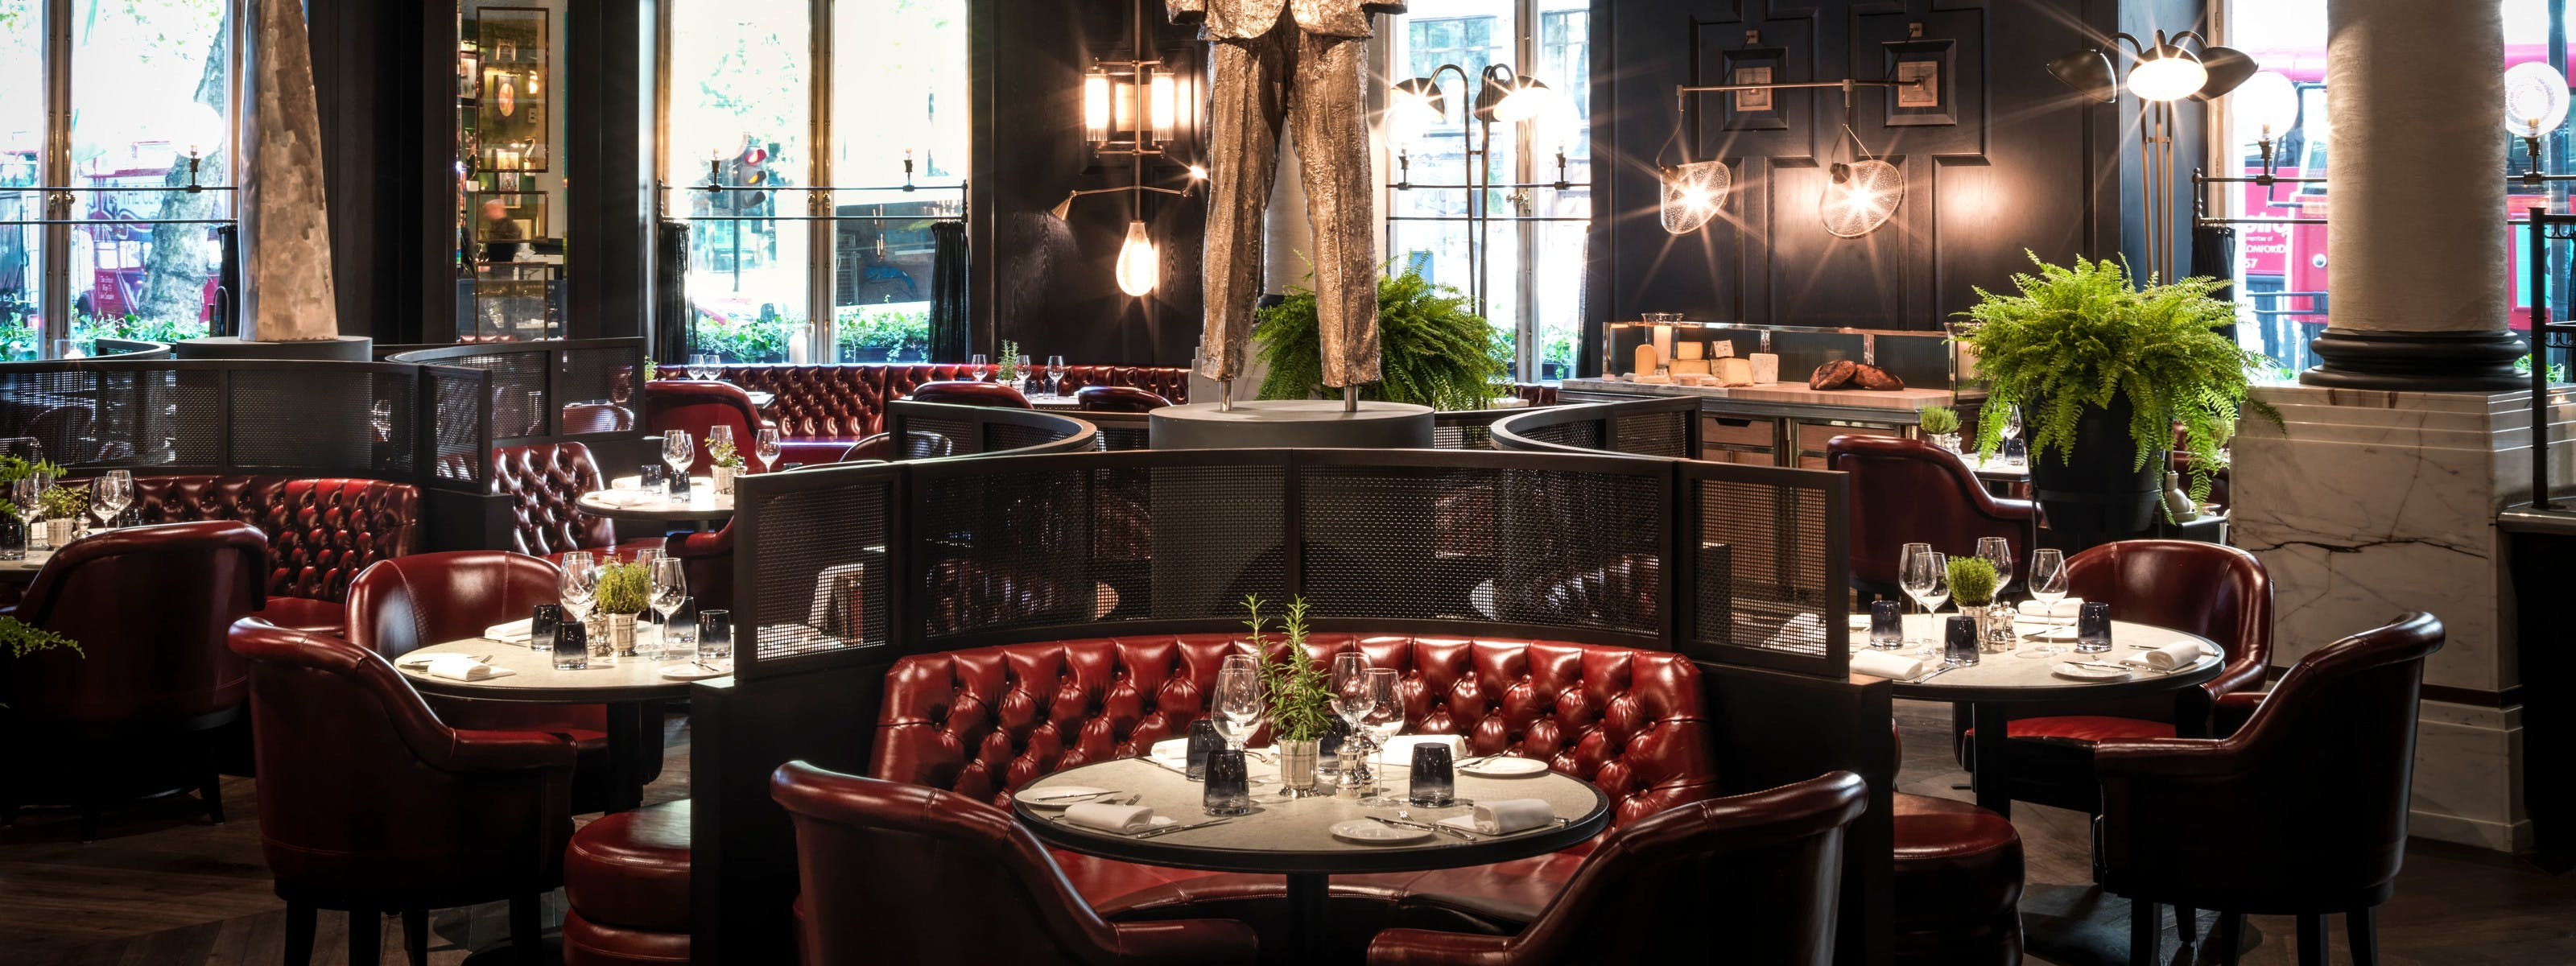 Where To Go When You Want To Get Dressed Up - London - The Infatuation